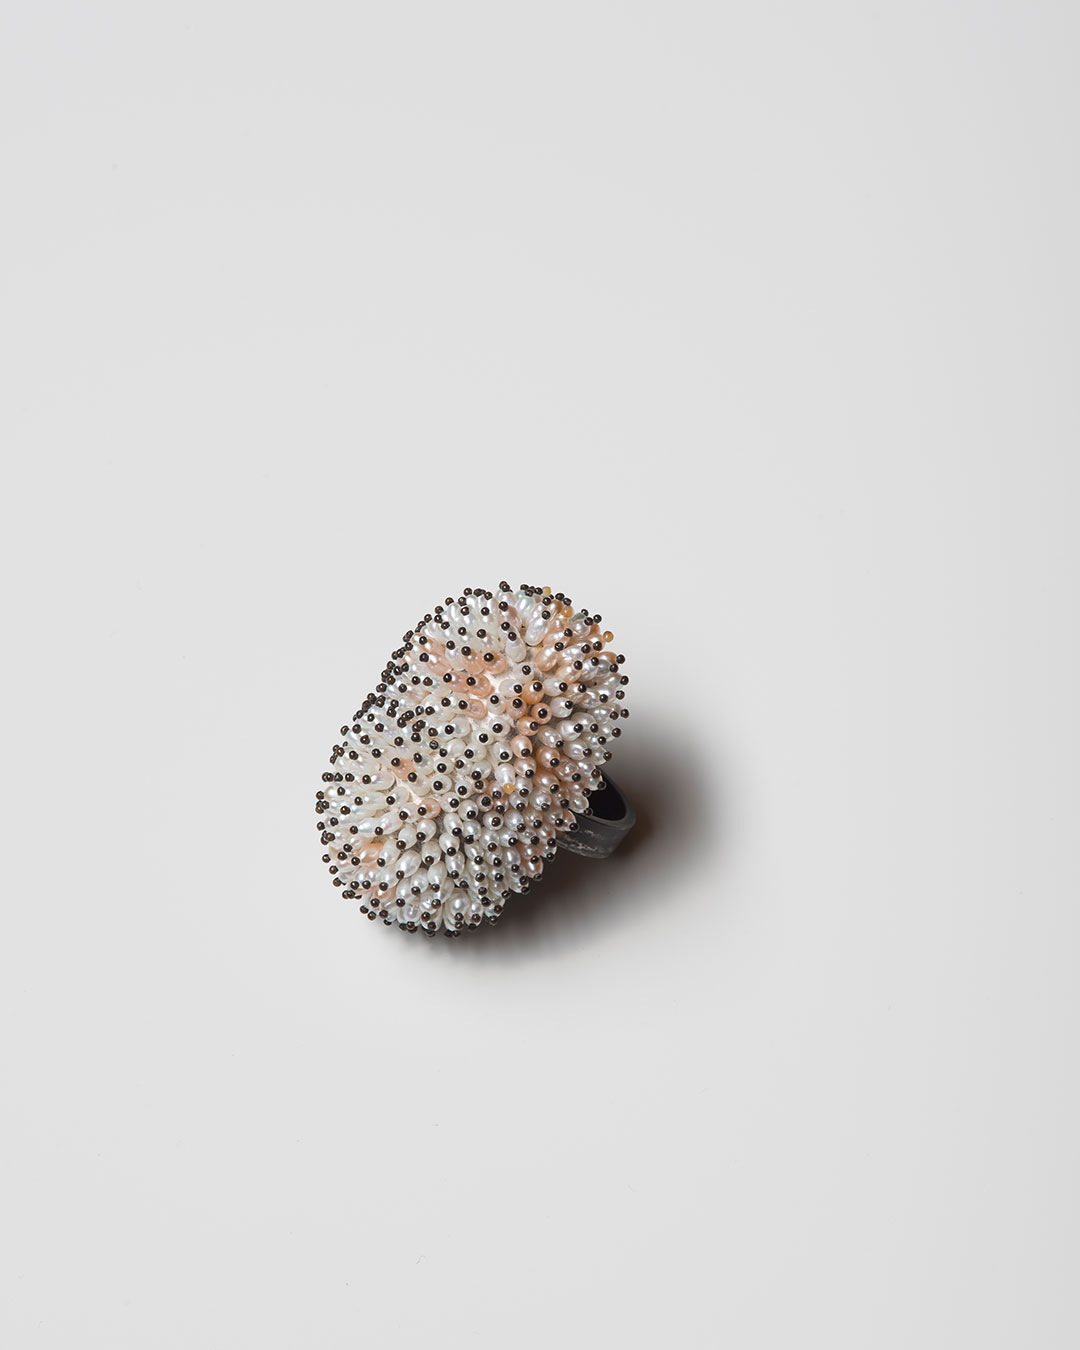 Sam Tho Duong, Look, 2020, ring; silver, freshwater pearls, nylon, €1840